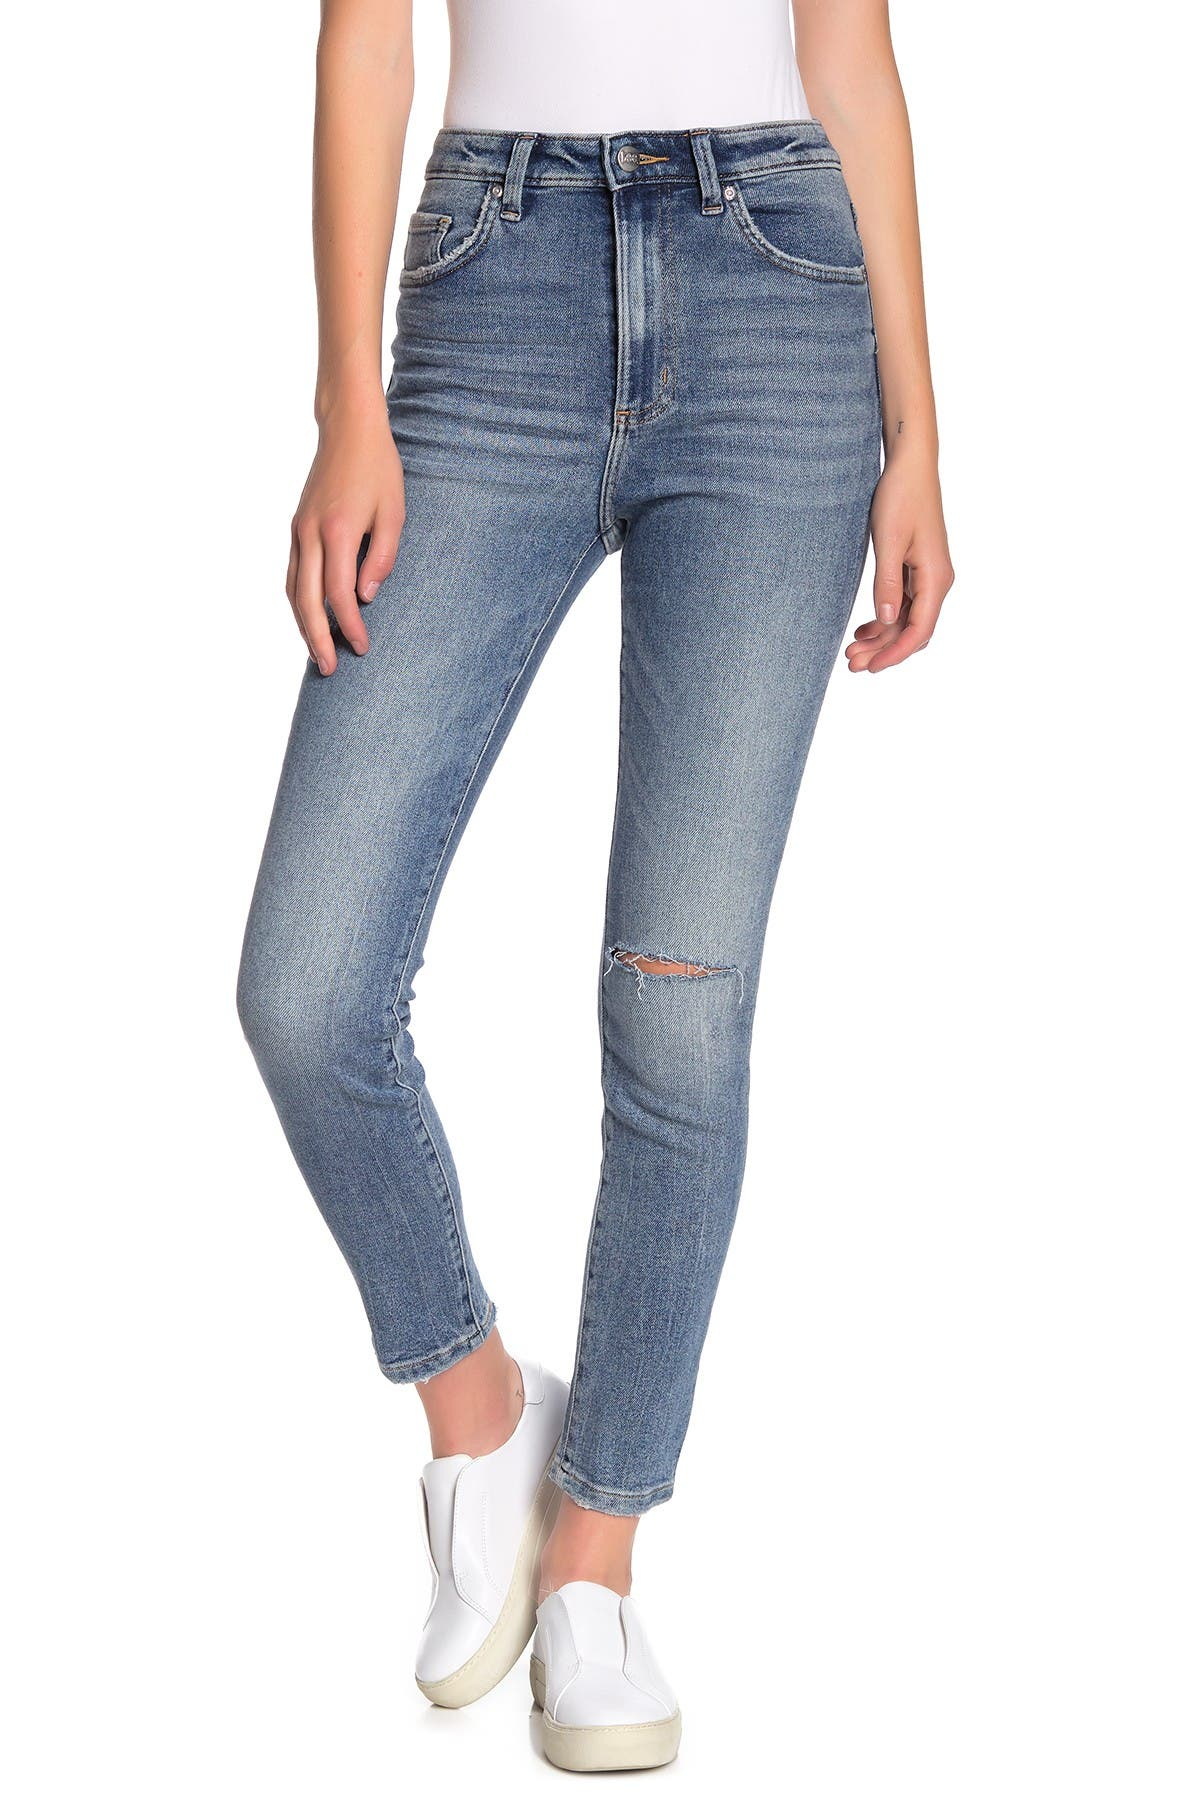 Image of LEE High Waisted Skinny Jeans